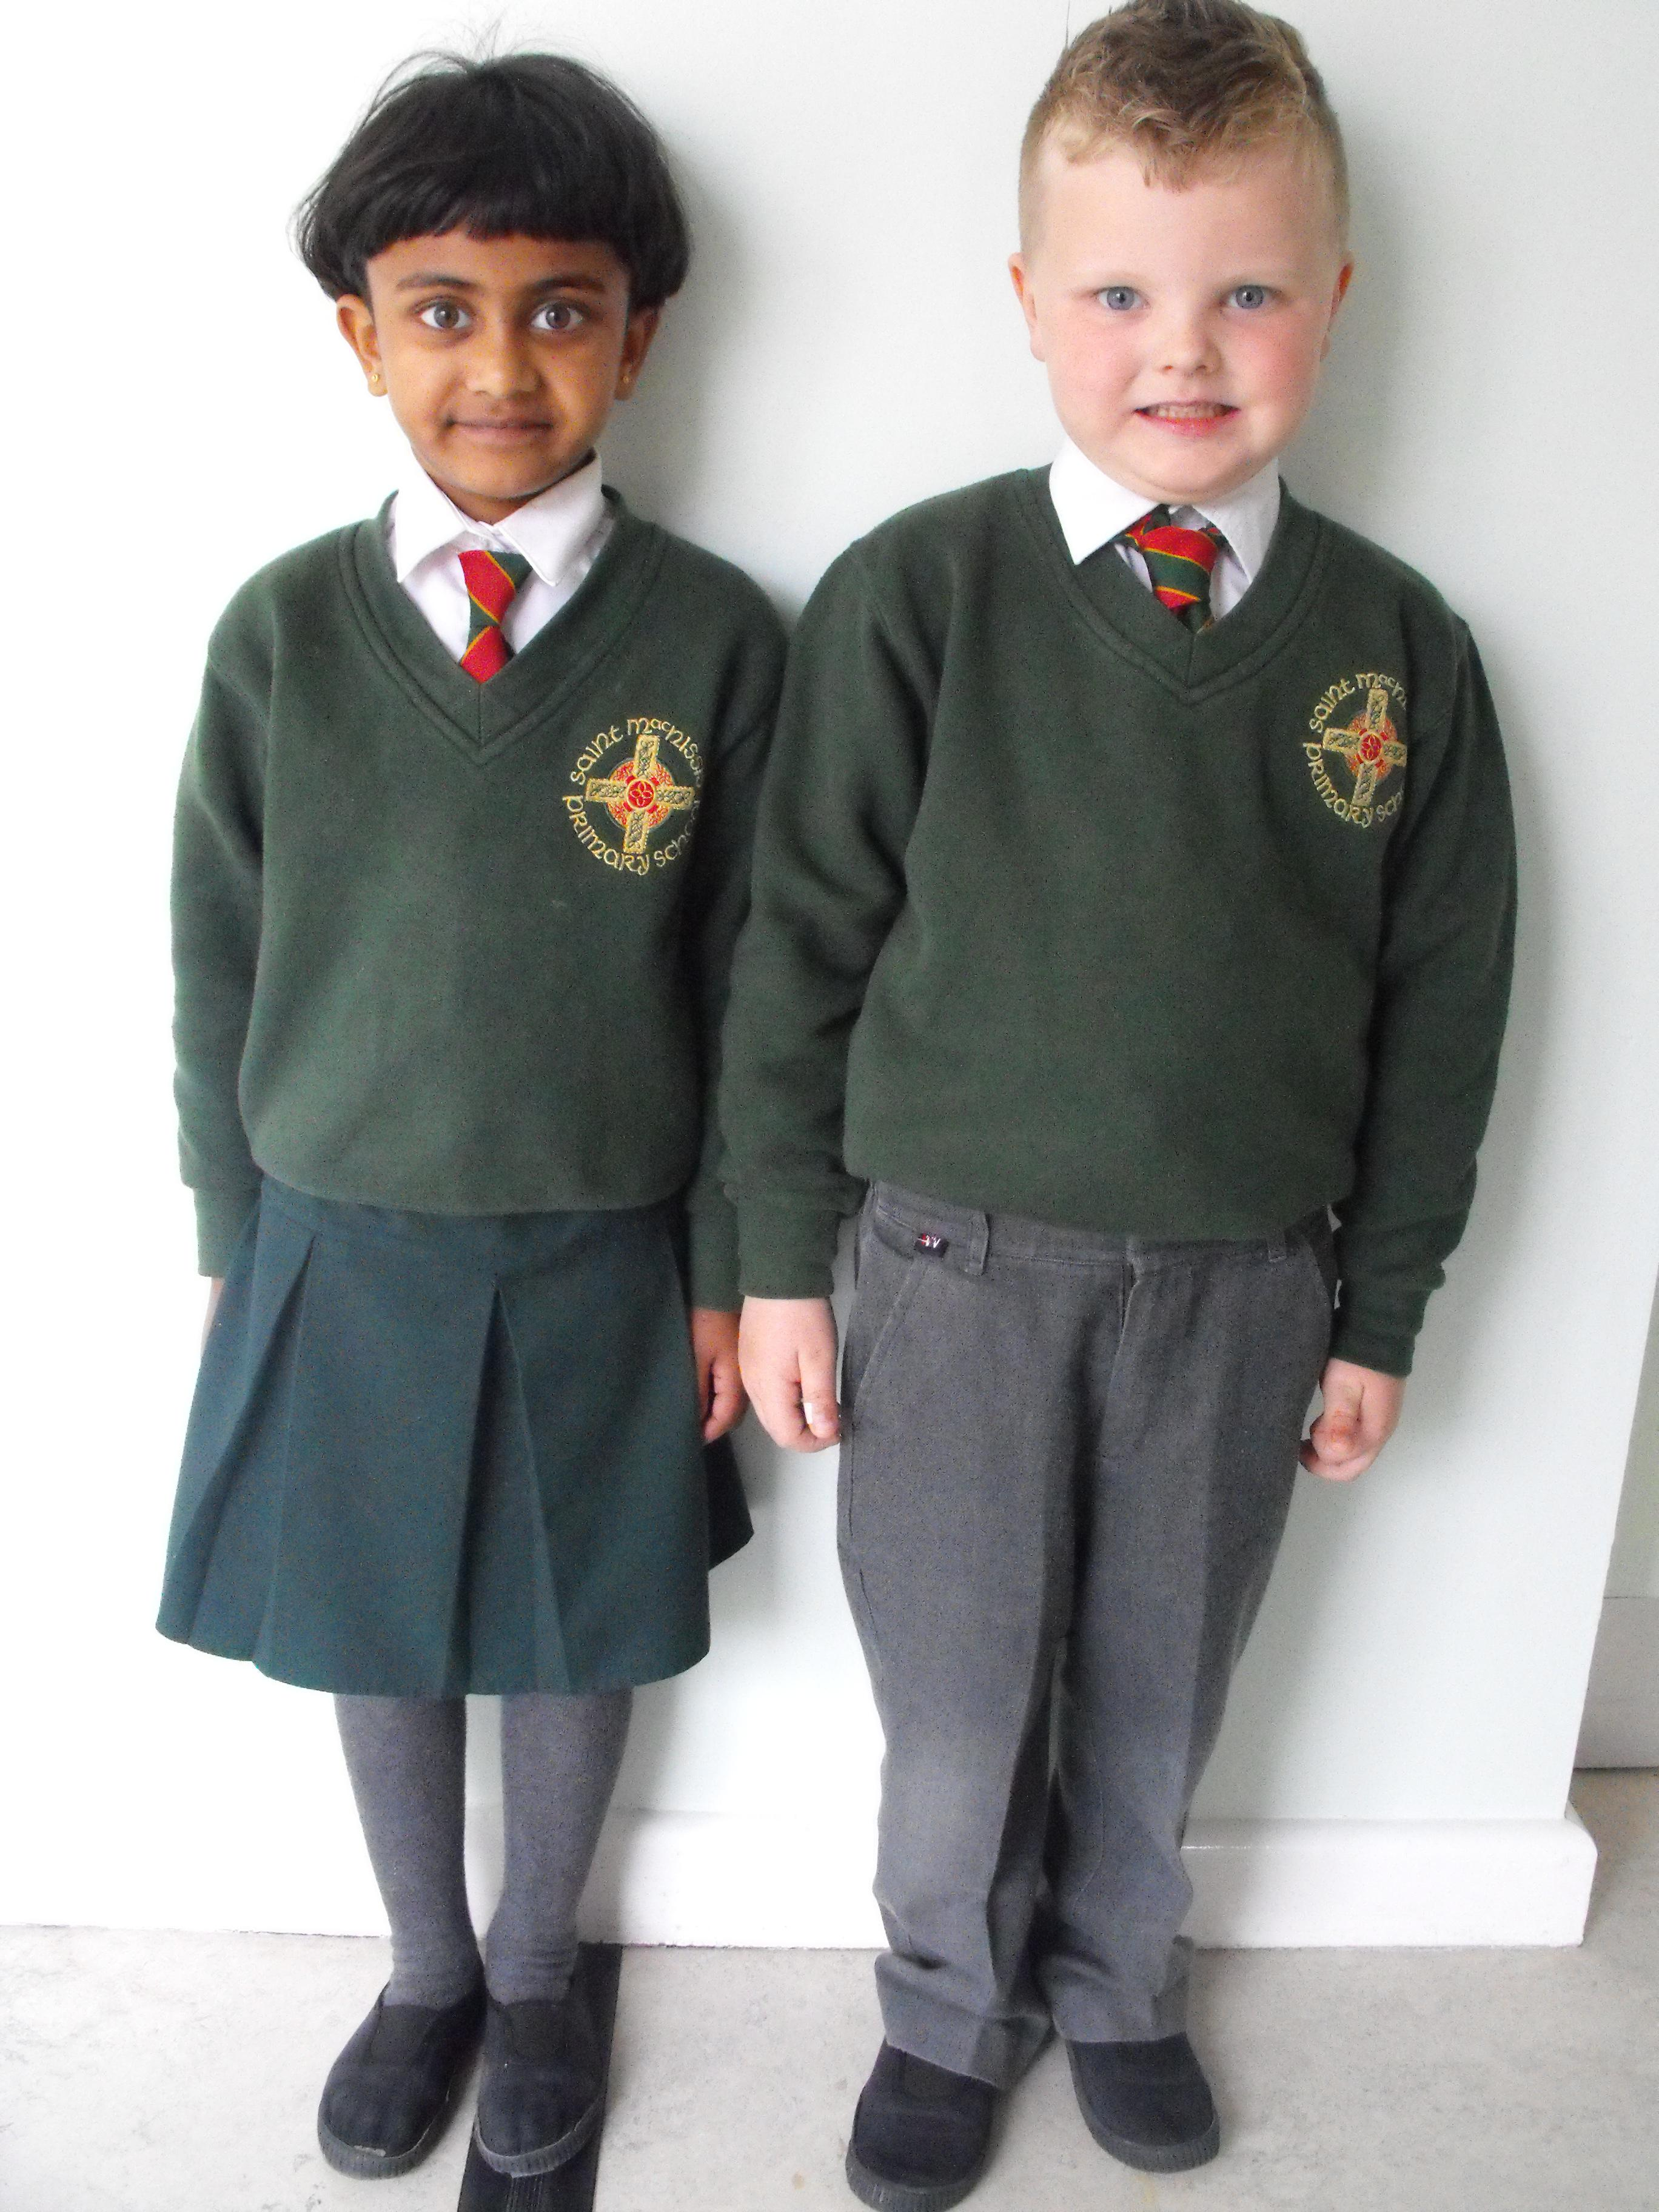 scool uniforms Your number one stop for quality school uniforms at great prices.